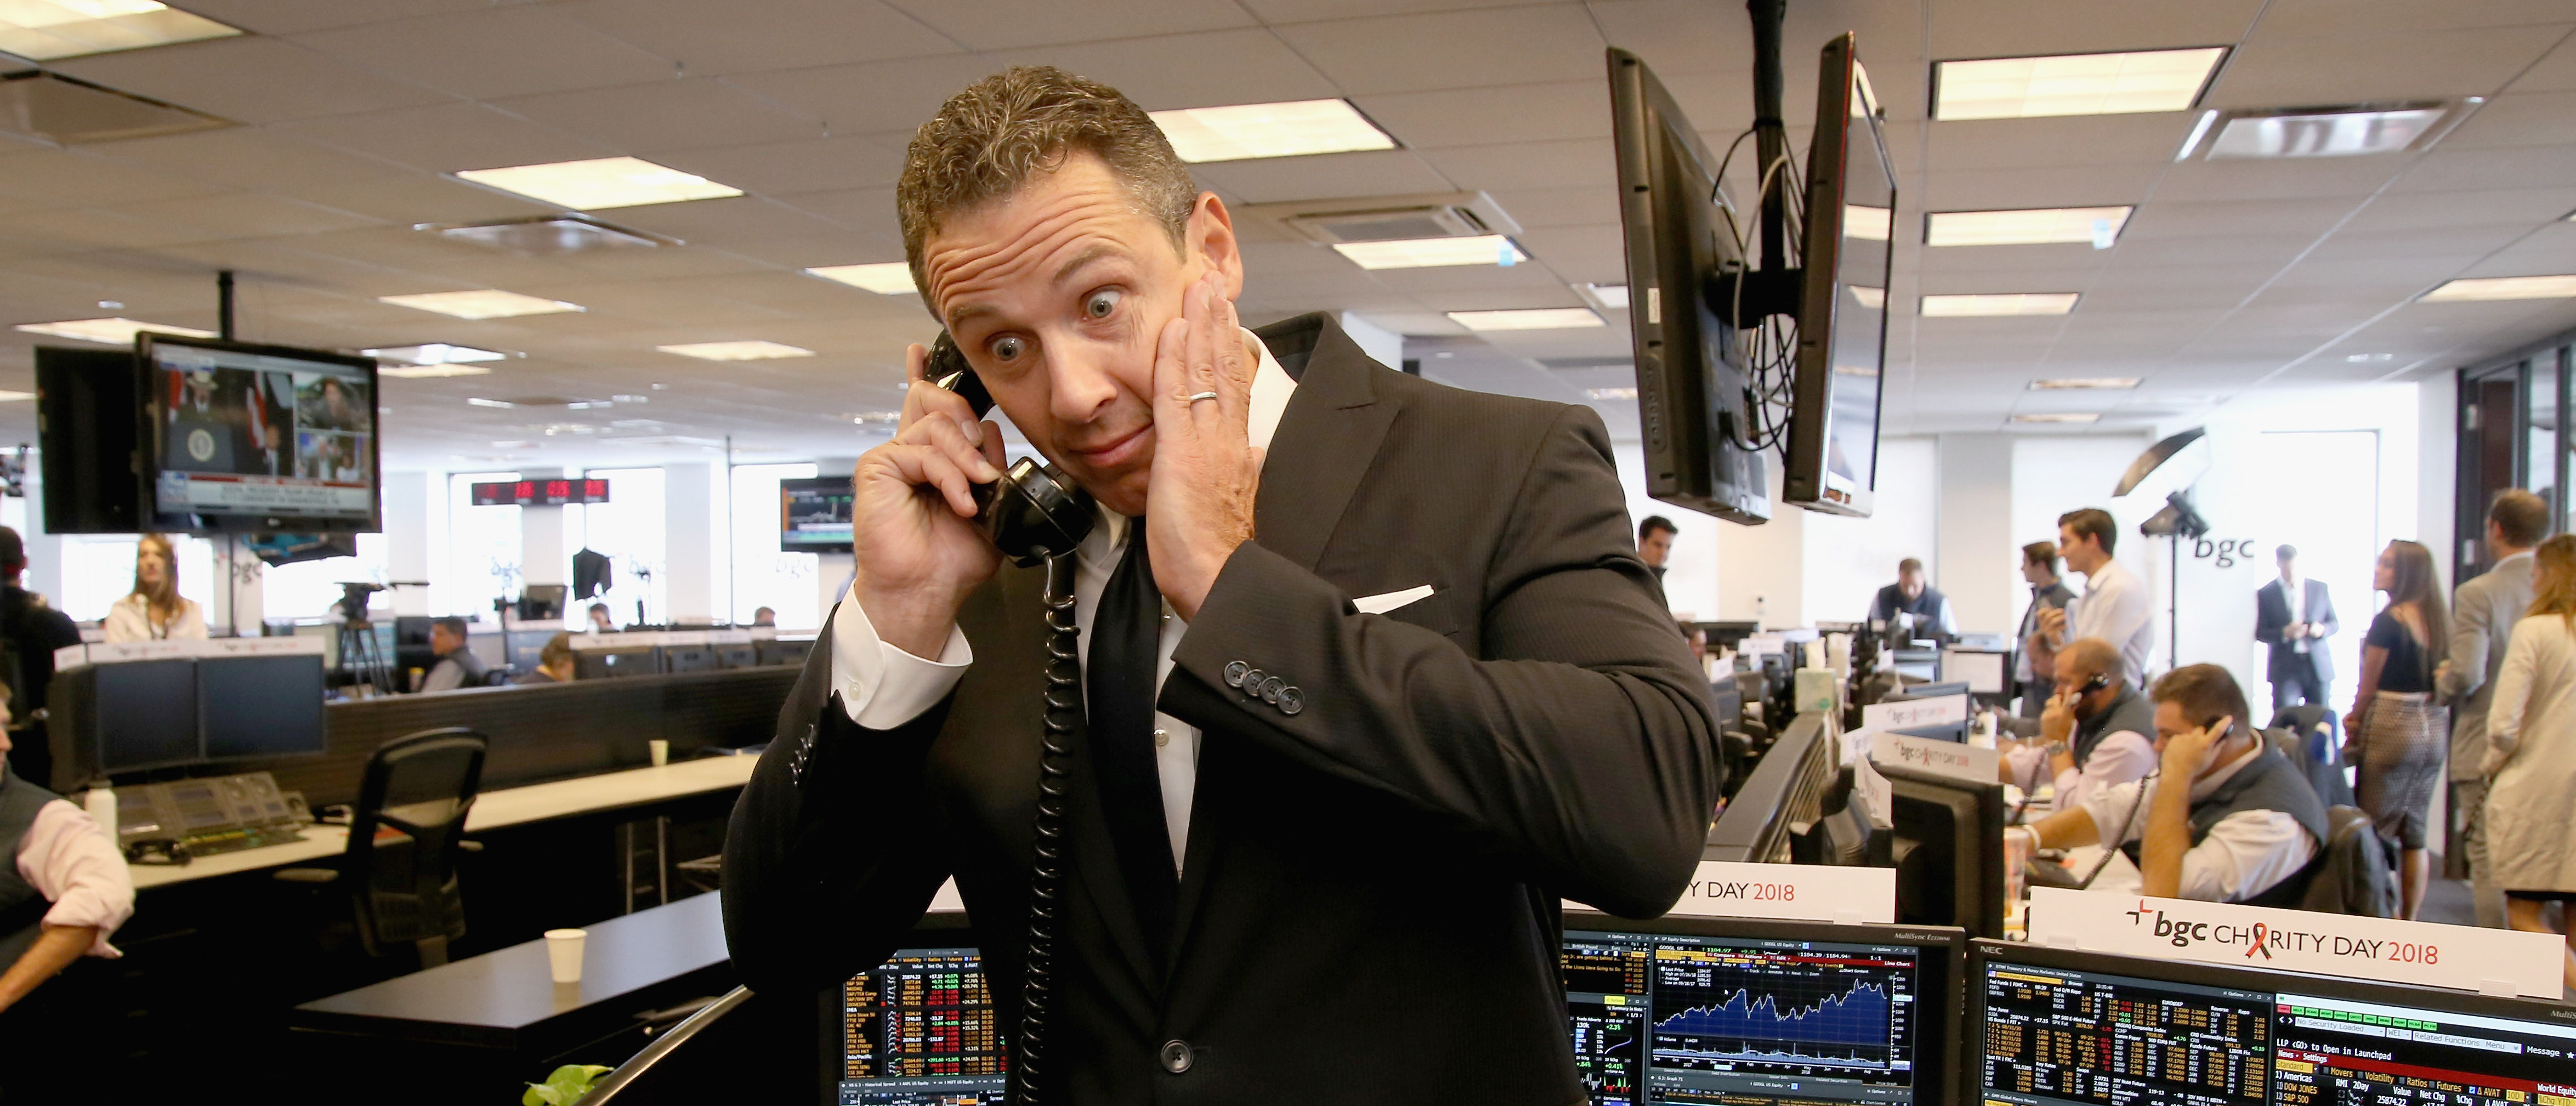 Chris Cuomo Apparently Seen Nonchalantly Standing Bare-A*